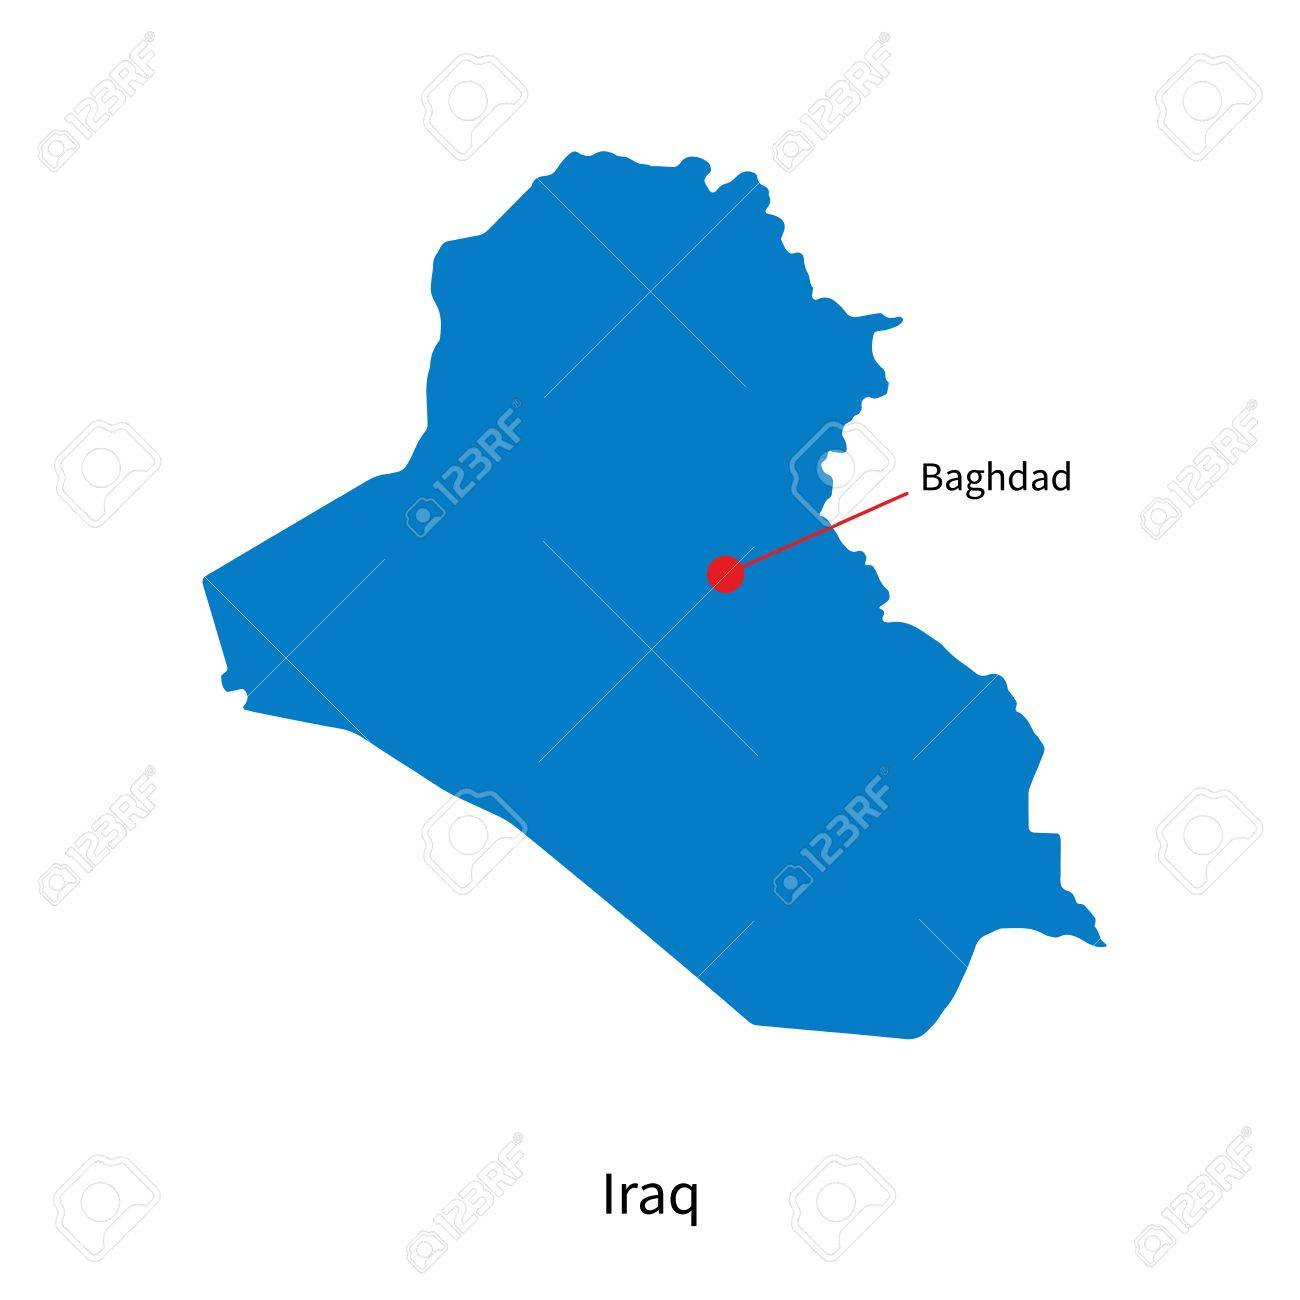 Detailed Map Of Iraq And Capital City Baghdad Royalty Free Cliparts ...